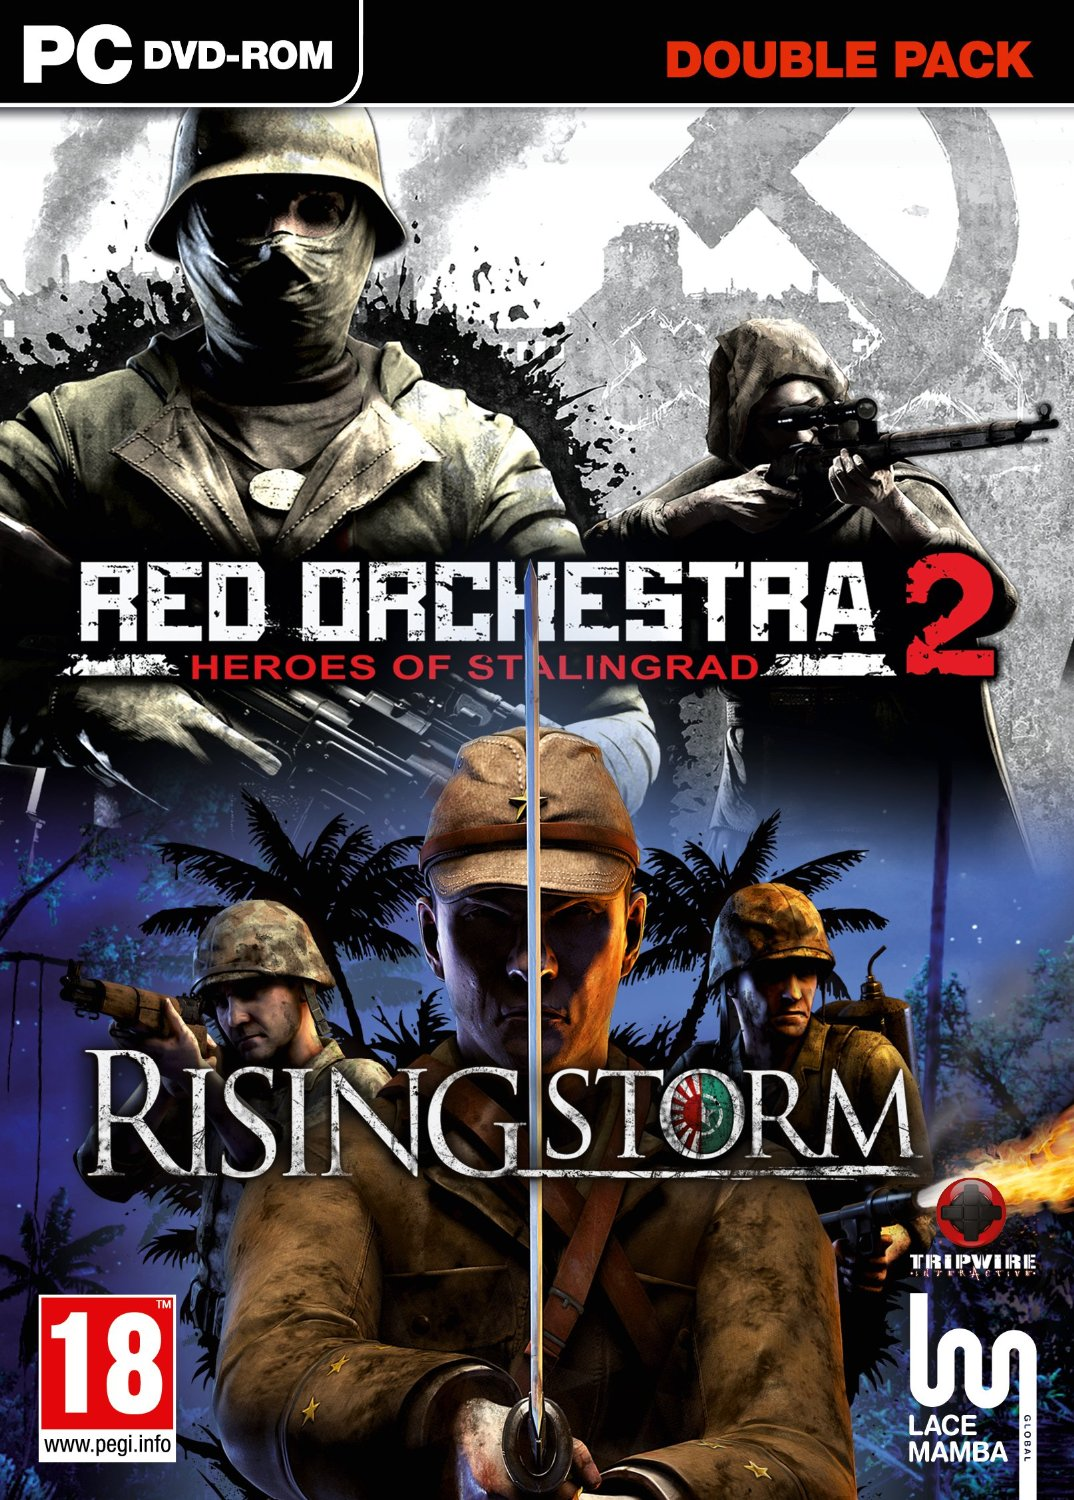 Red Orchestra 2 Rising Storm Free Download